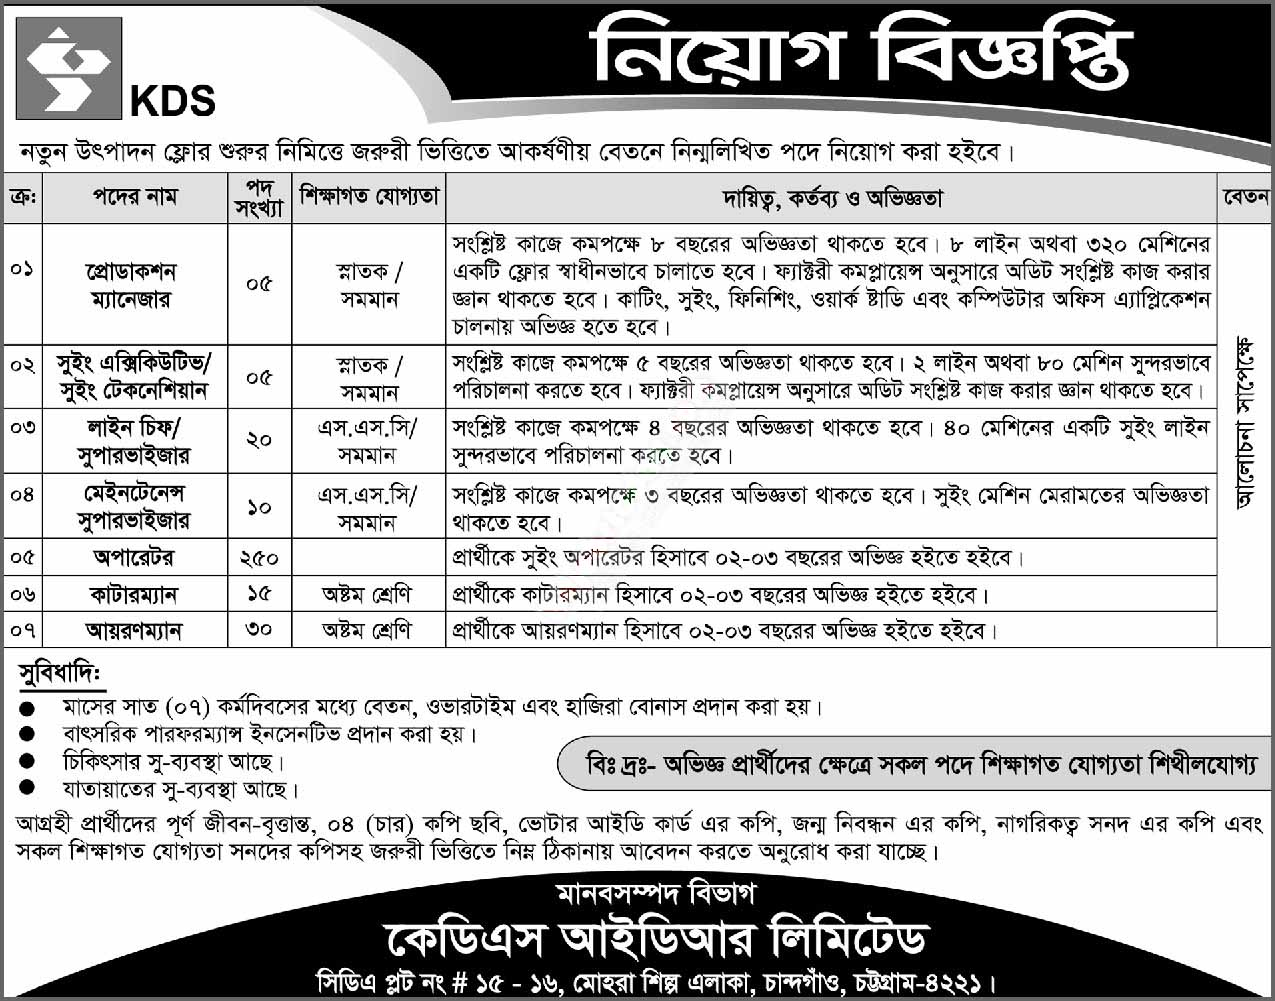 kds idr ltd job circular 2019